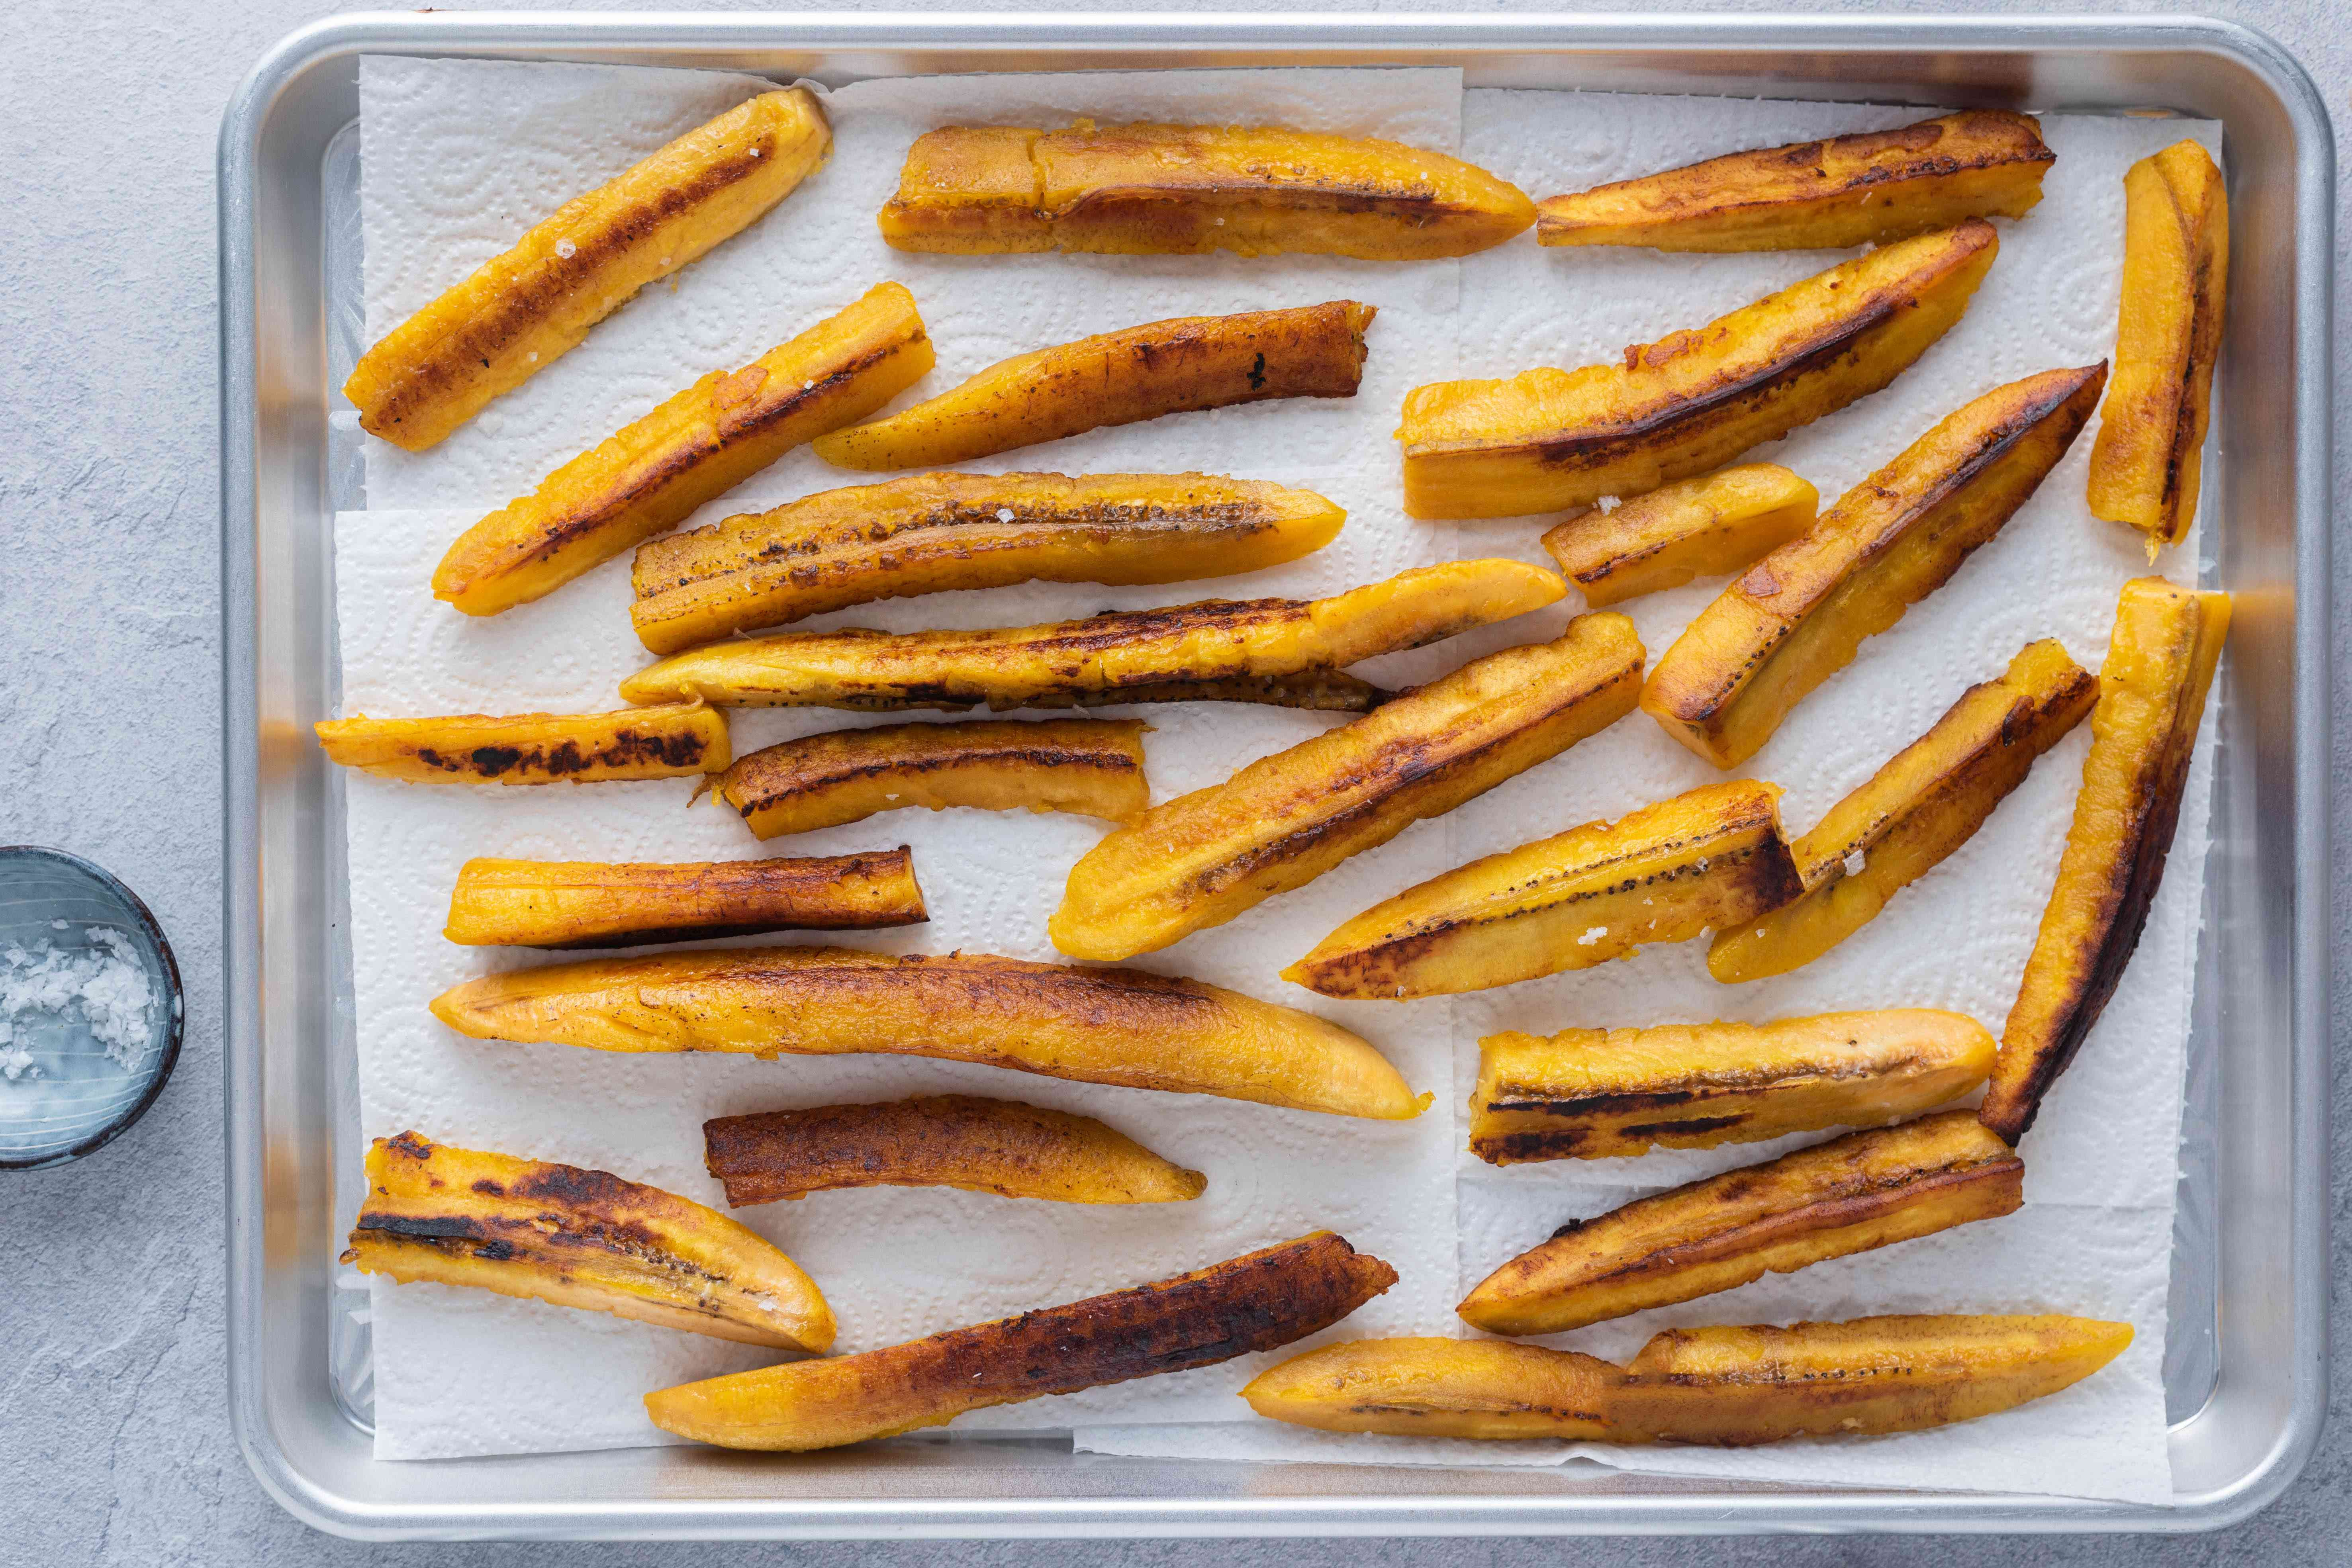 fried plantain pieces on a paper towel lined baking sheet